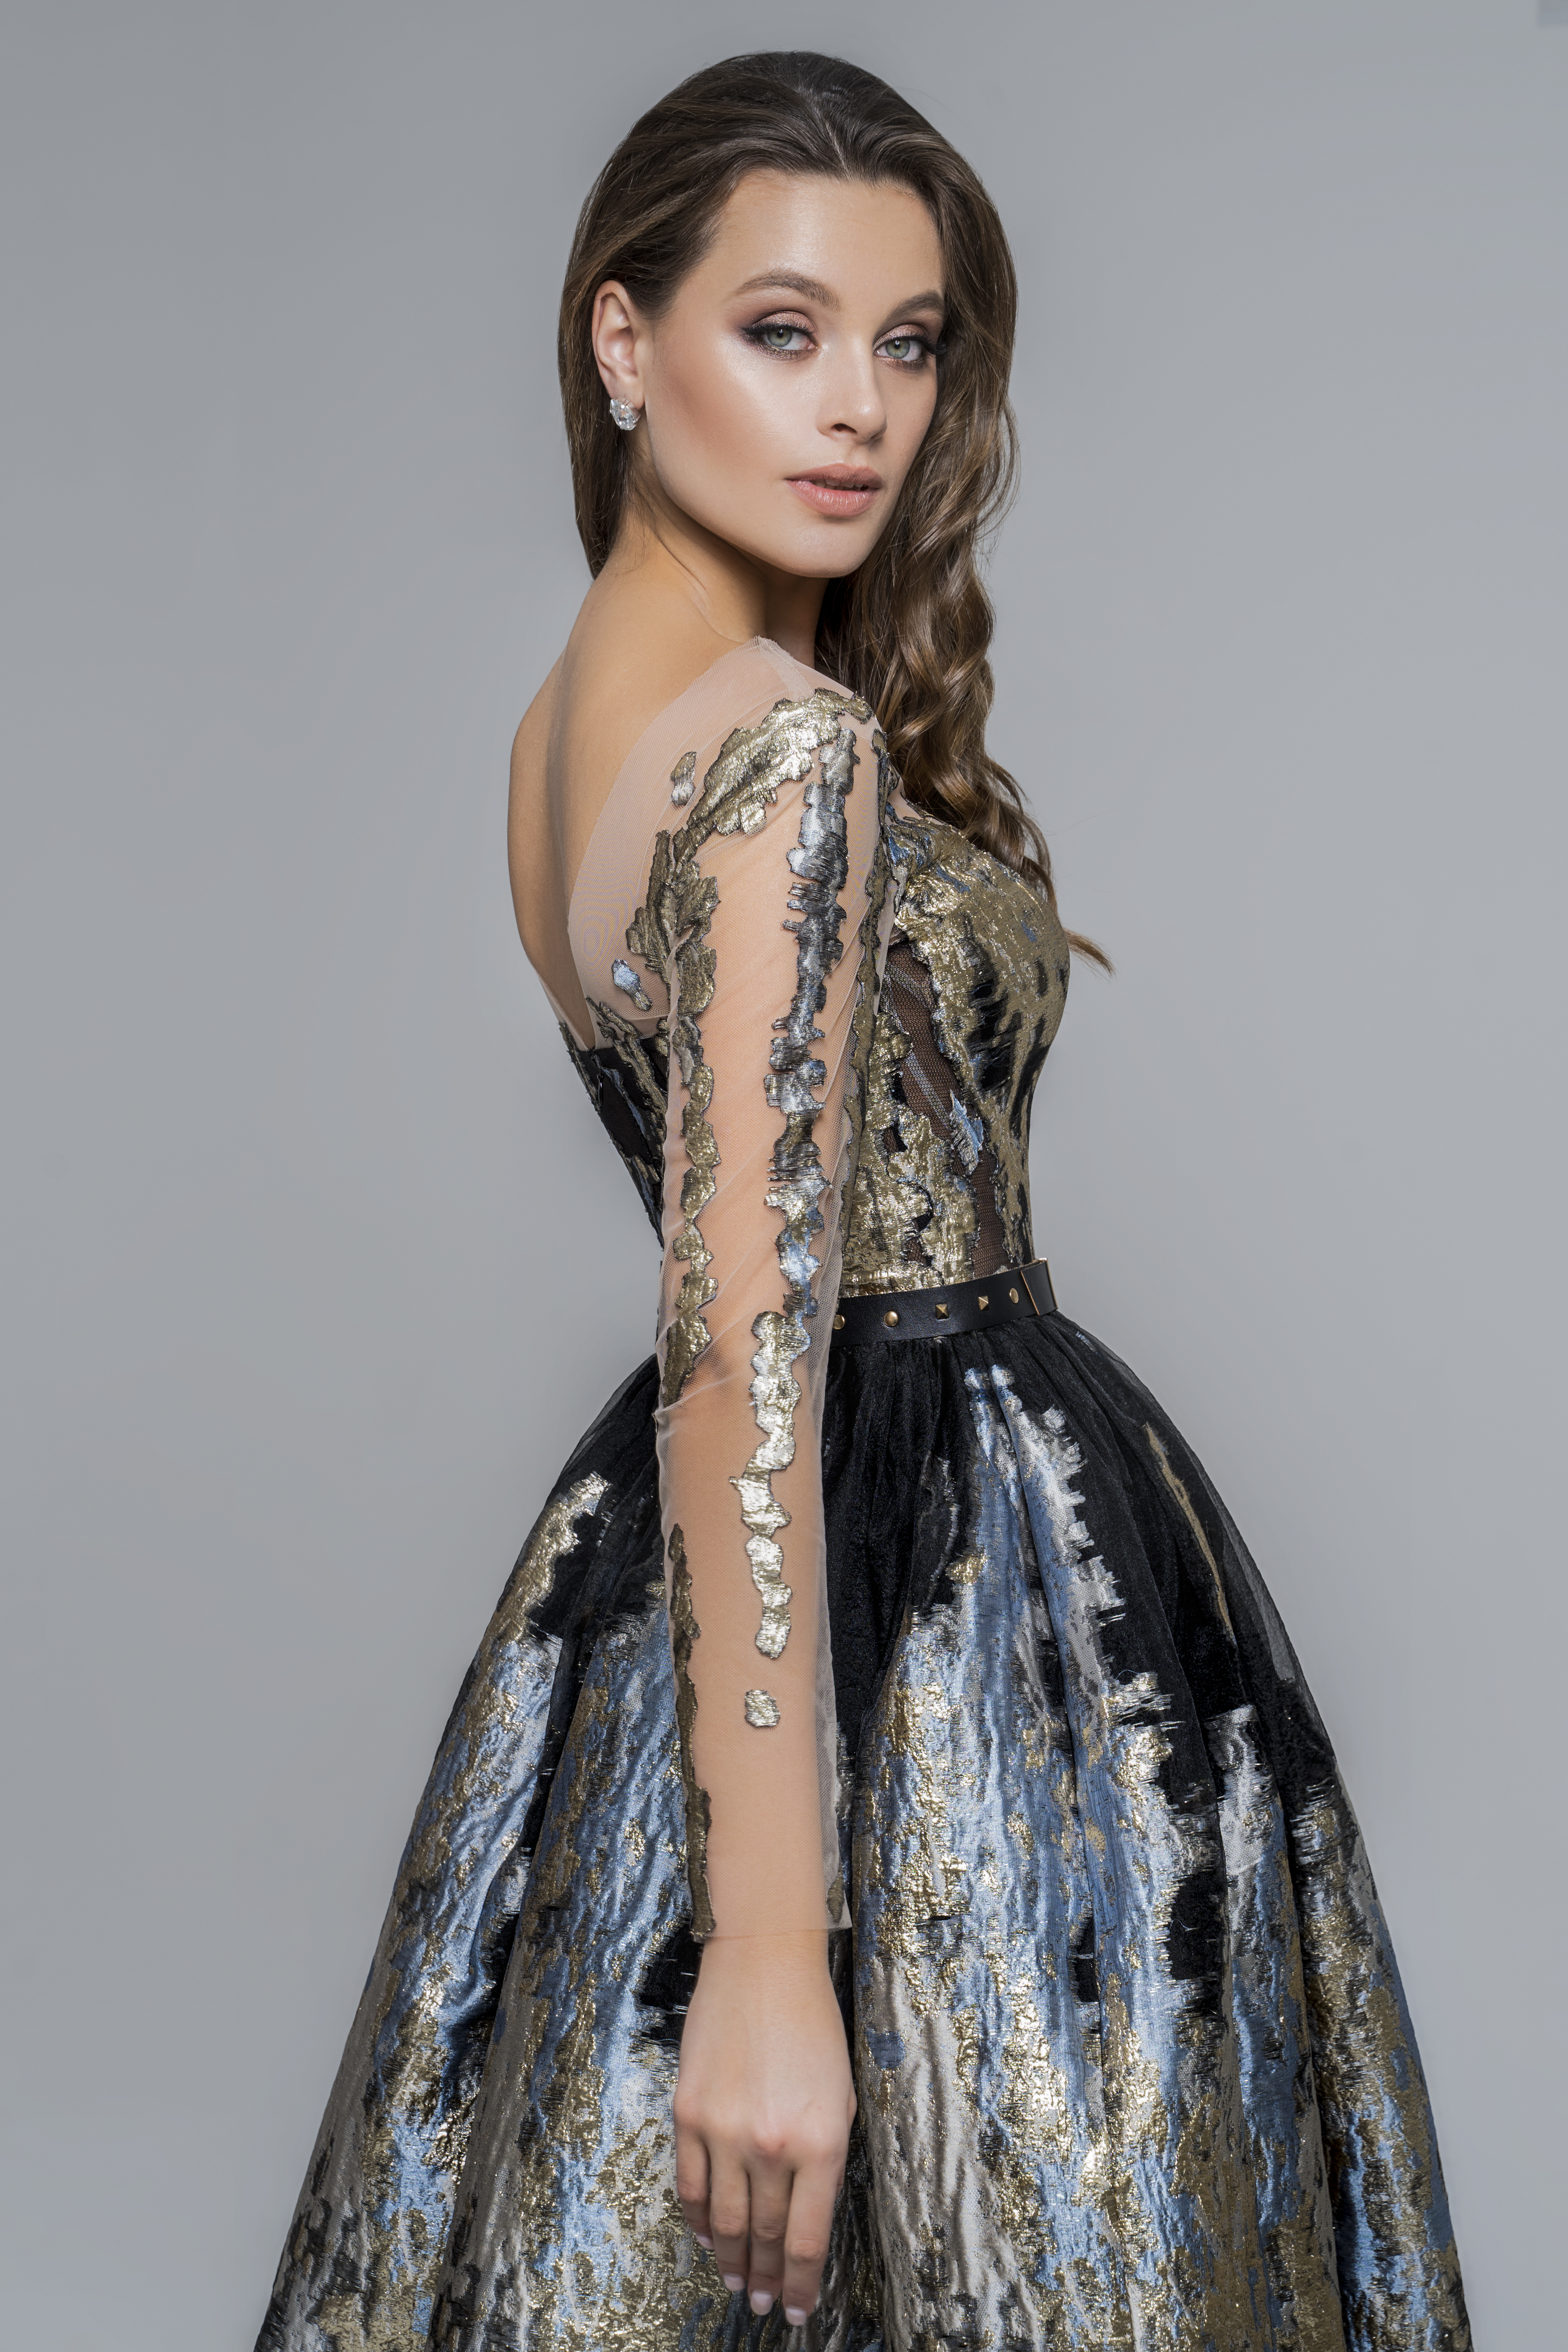 Evening dresses 1818 Silhouette  A Line  Color  Gold  Black  Neckline  Sweetheart  Portrait (V-neck)  Illusion  Sleeves  Long Sleeves  Fitted  Train  No train - foto 3